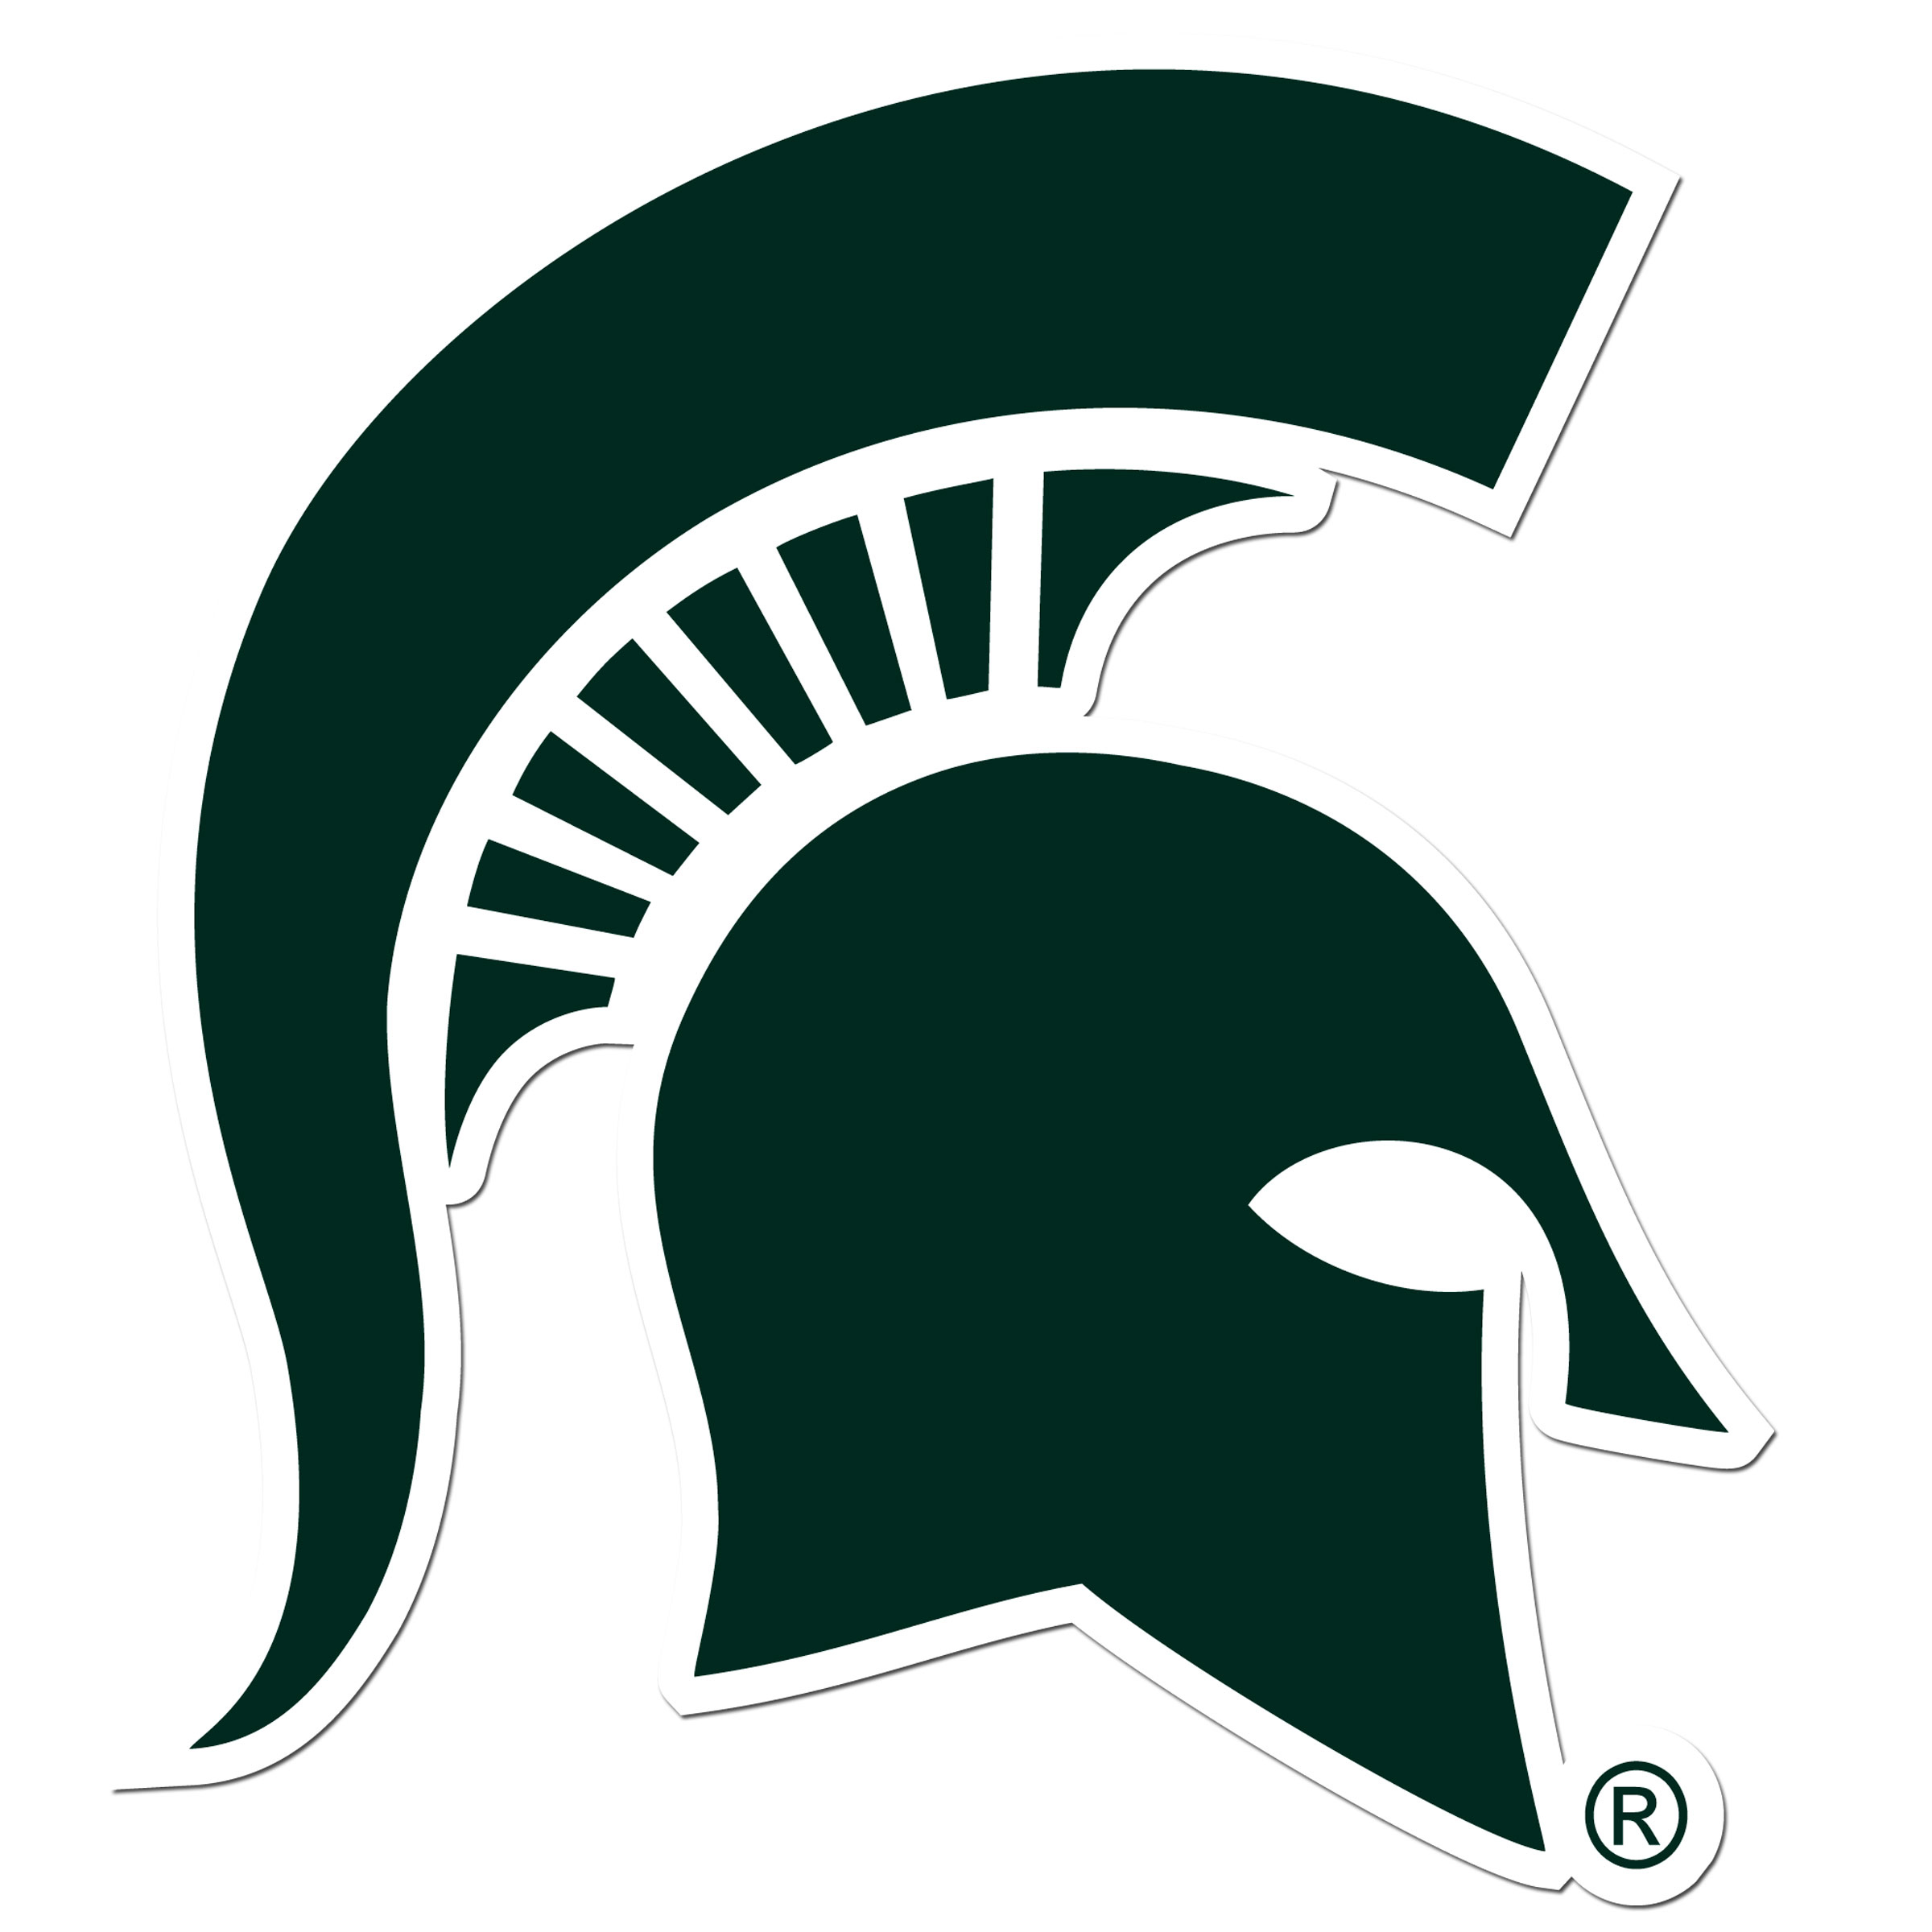 Michigan St. Spartans 8 inch Auto Decal - This bold, 8 inch Michigan St. Spartans is a great way to show off your team pride! The low tack vinyl decal is easily positioned and adjusted to make sure you get that logo in just the right spot on your vehicle. Designed to be used on the outside of the window.